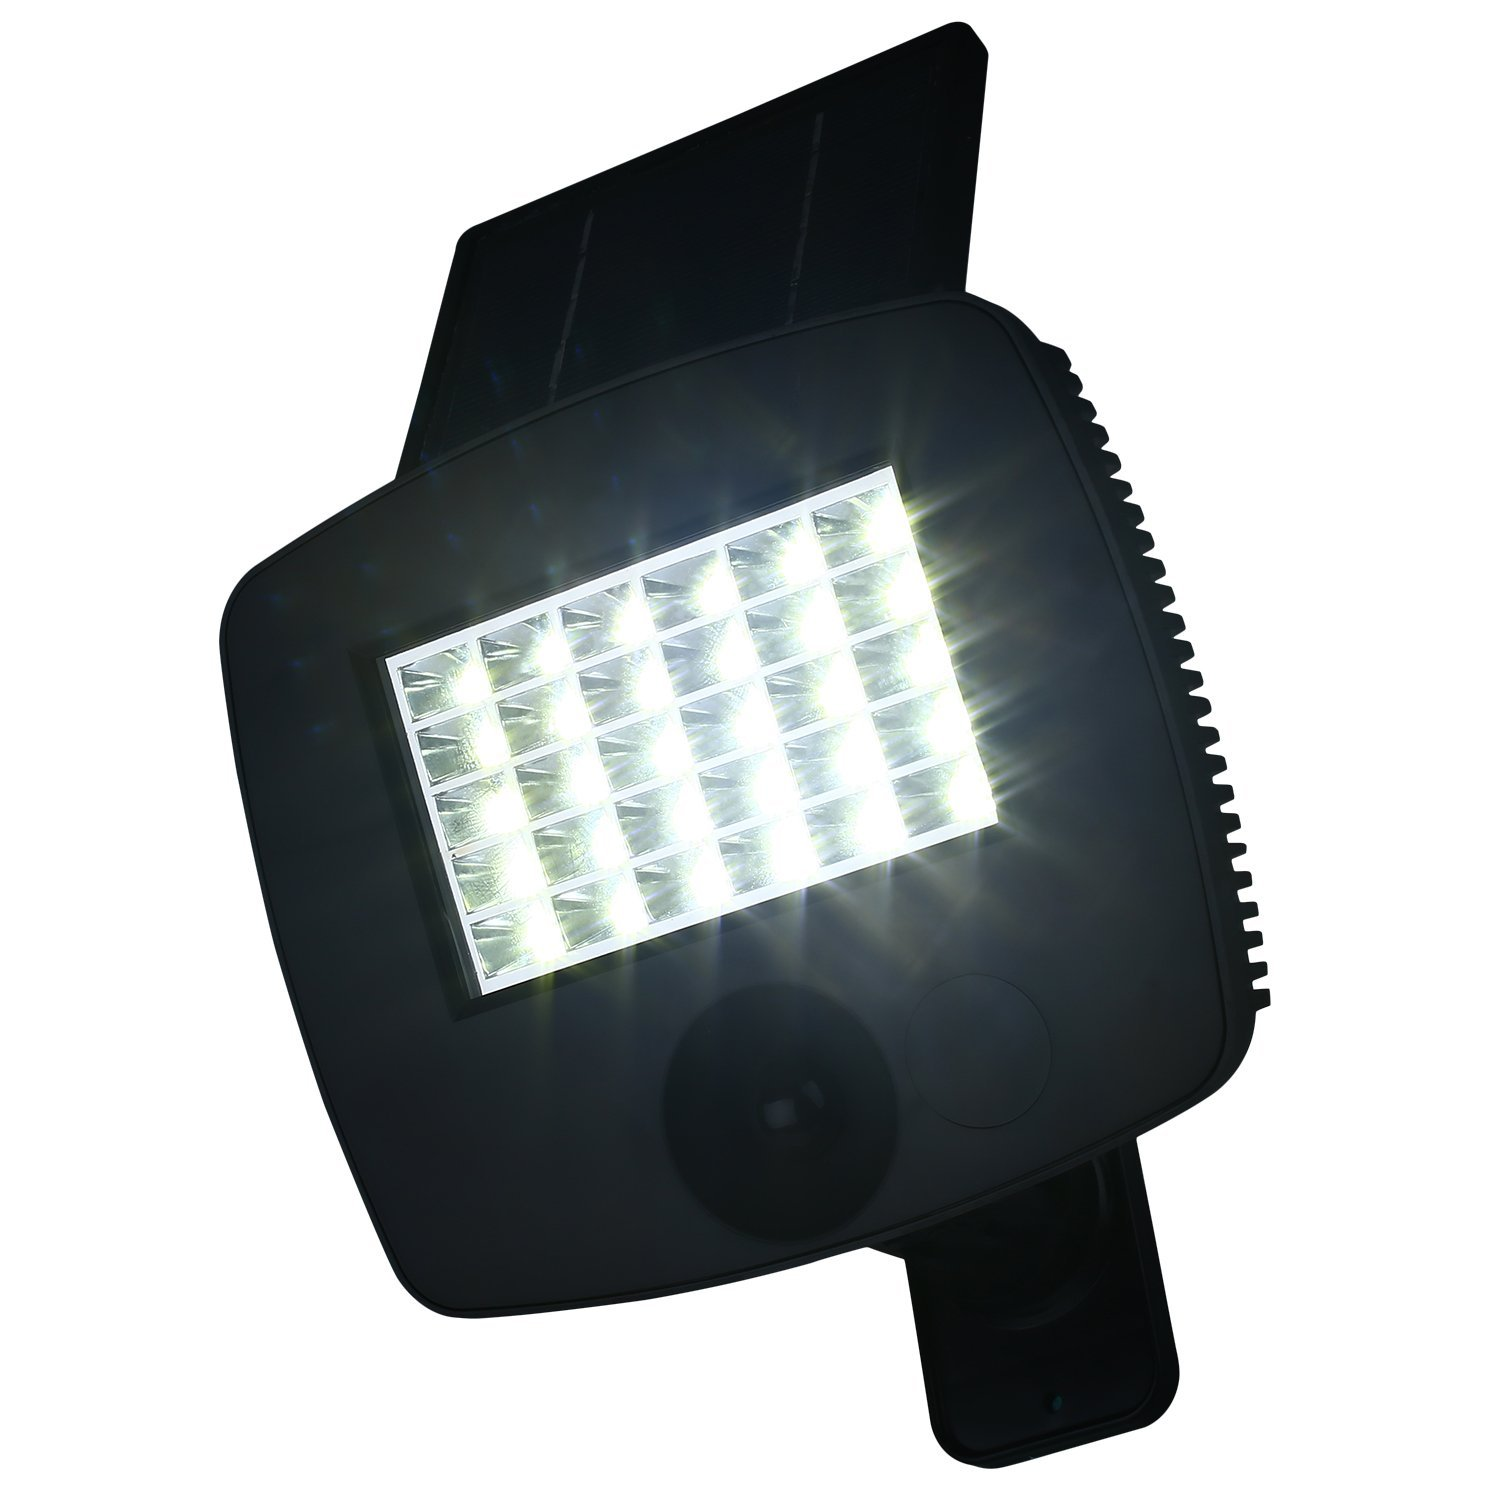 Hongfei Solar Outdoor LED Spotlight, Outdoor Lamp, Ultra Bright Garden Spotlight 200 Lumens LED with Solar Panel Motion Sensor for Garage, Garden, Patio, Terrace, Door, Portal, etc.